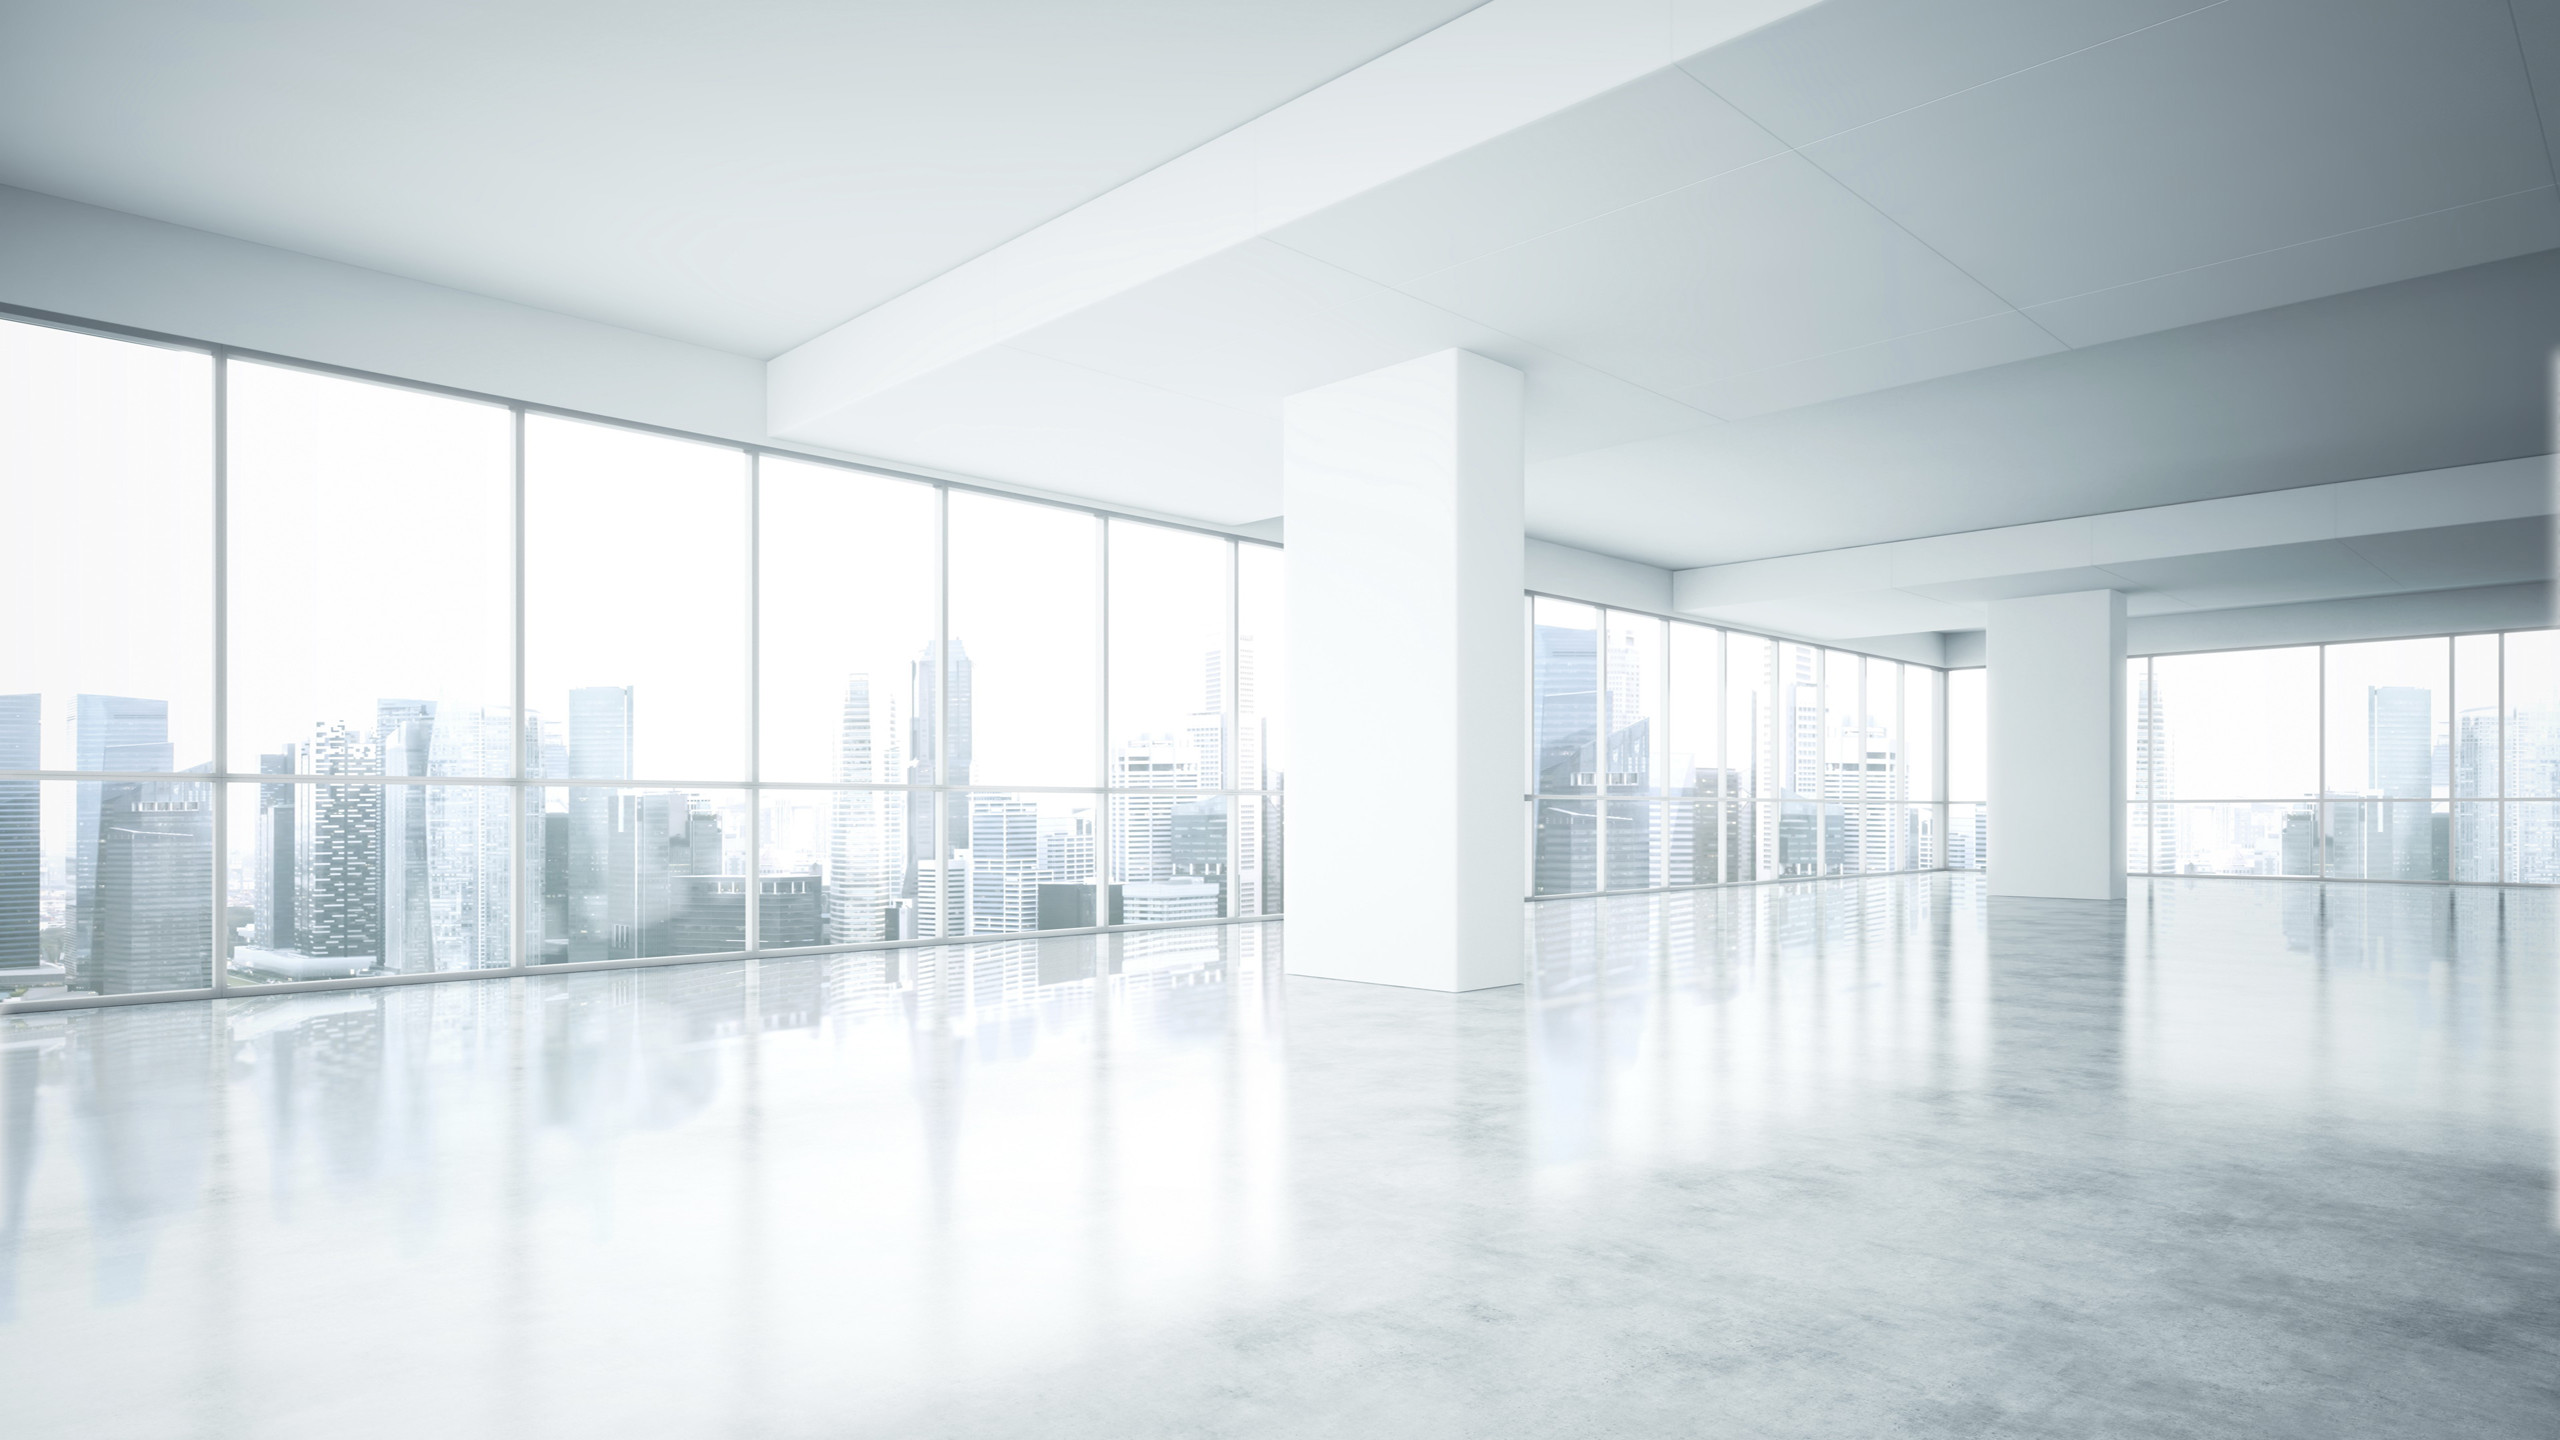 cheap campbell keller project management with white office interior